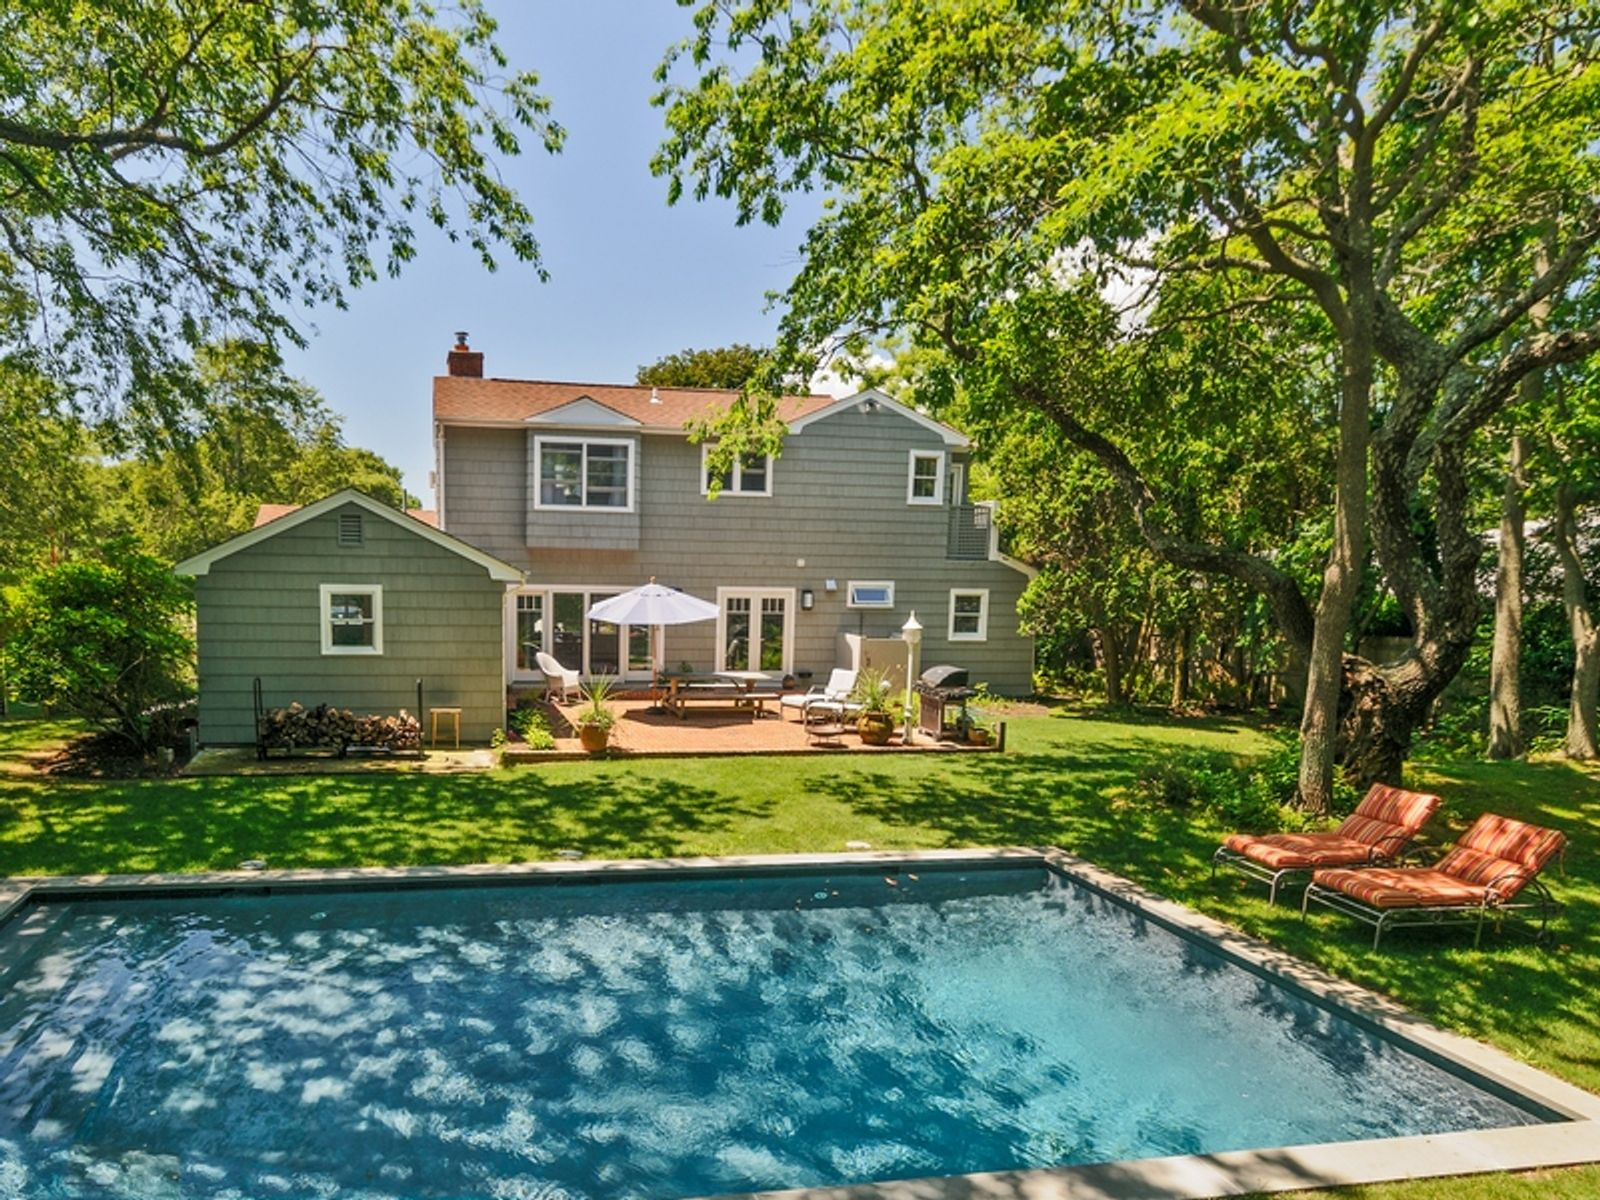 Ideal Amagansett Lanes, Amagansett NY Single Family Home - Hamptons Real Estate